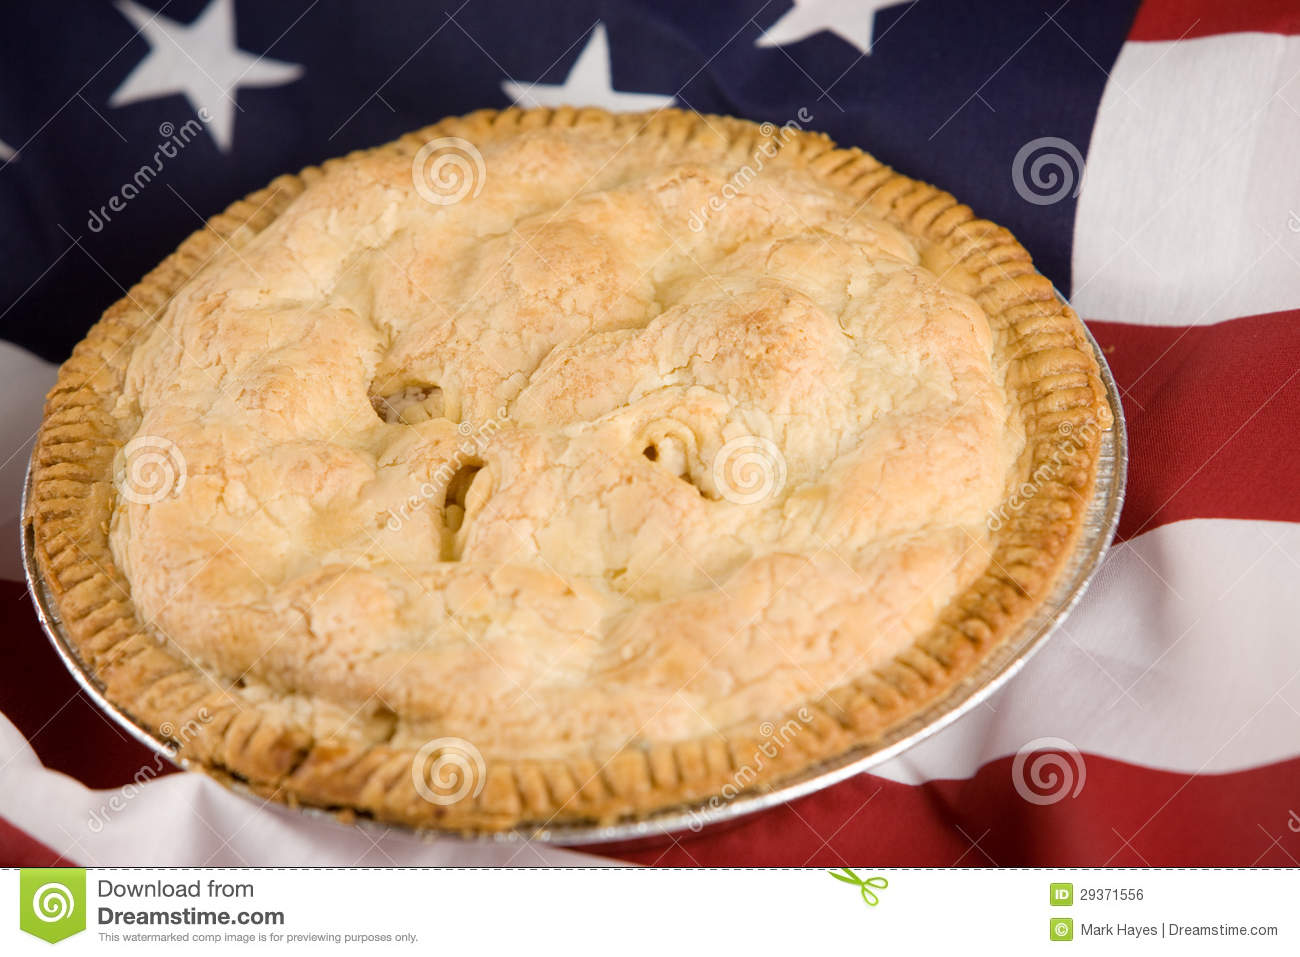 as american as apple pie essay How to bake an apple pie from scratch though a store-bought apple pie can  give you some of the sweet, rich flavor you're craving, nothing beats an apple pie .